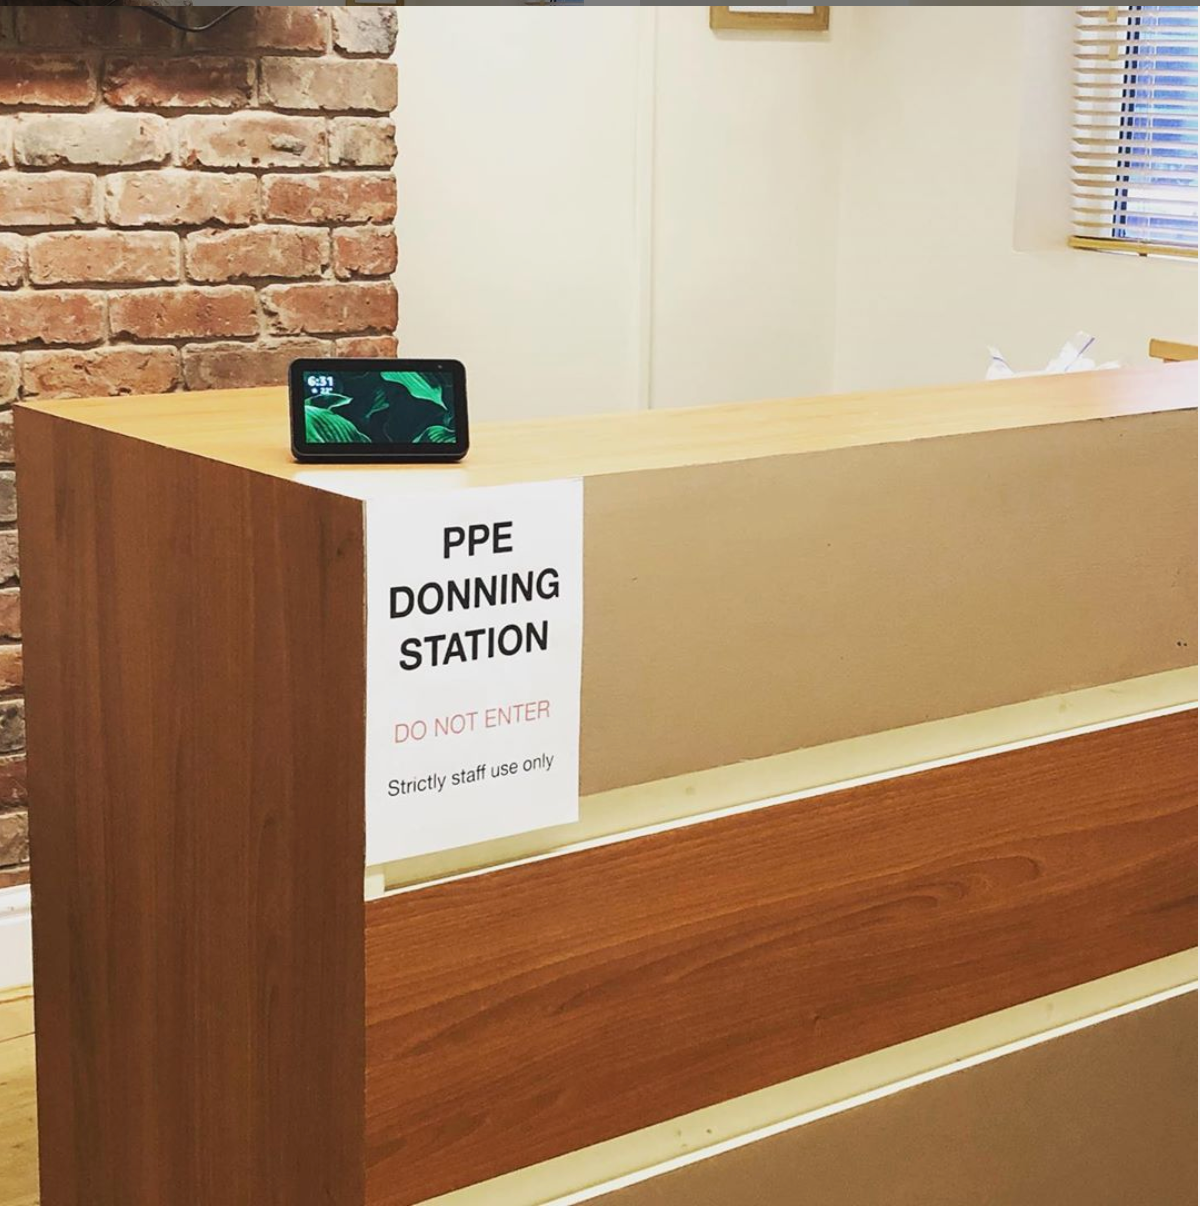 A photo of the PPE donning station at The Village Osteopaths, with a sign advising patients not to enter and a video device so Sean can carry out reception duties remotely